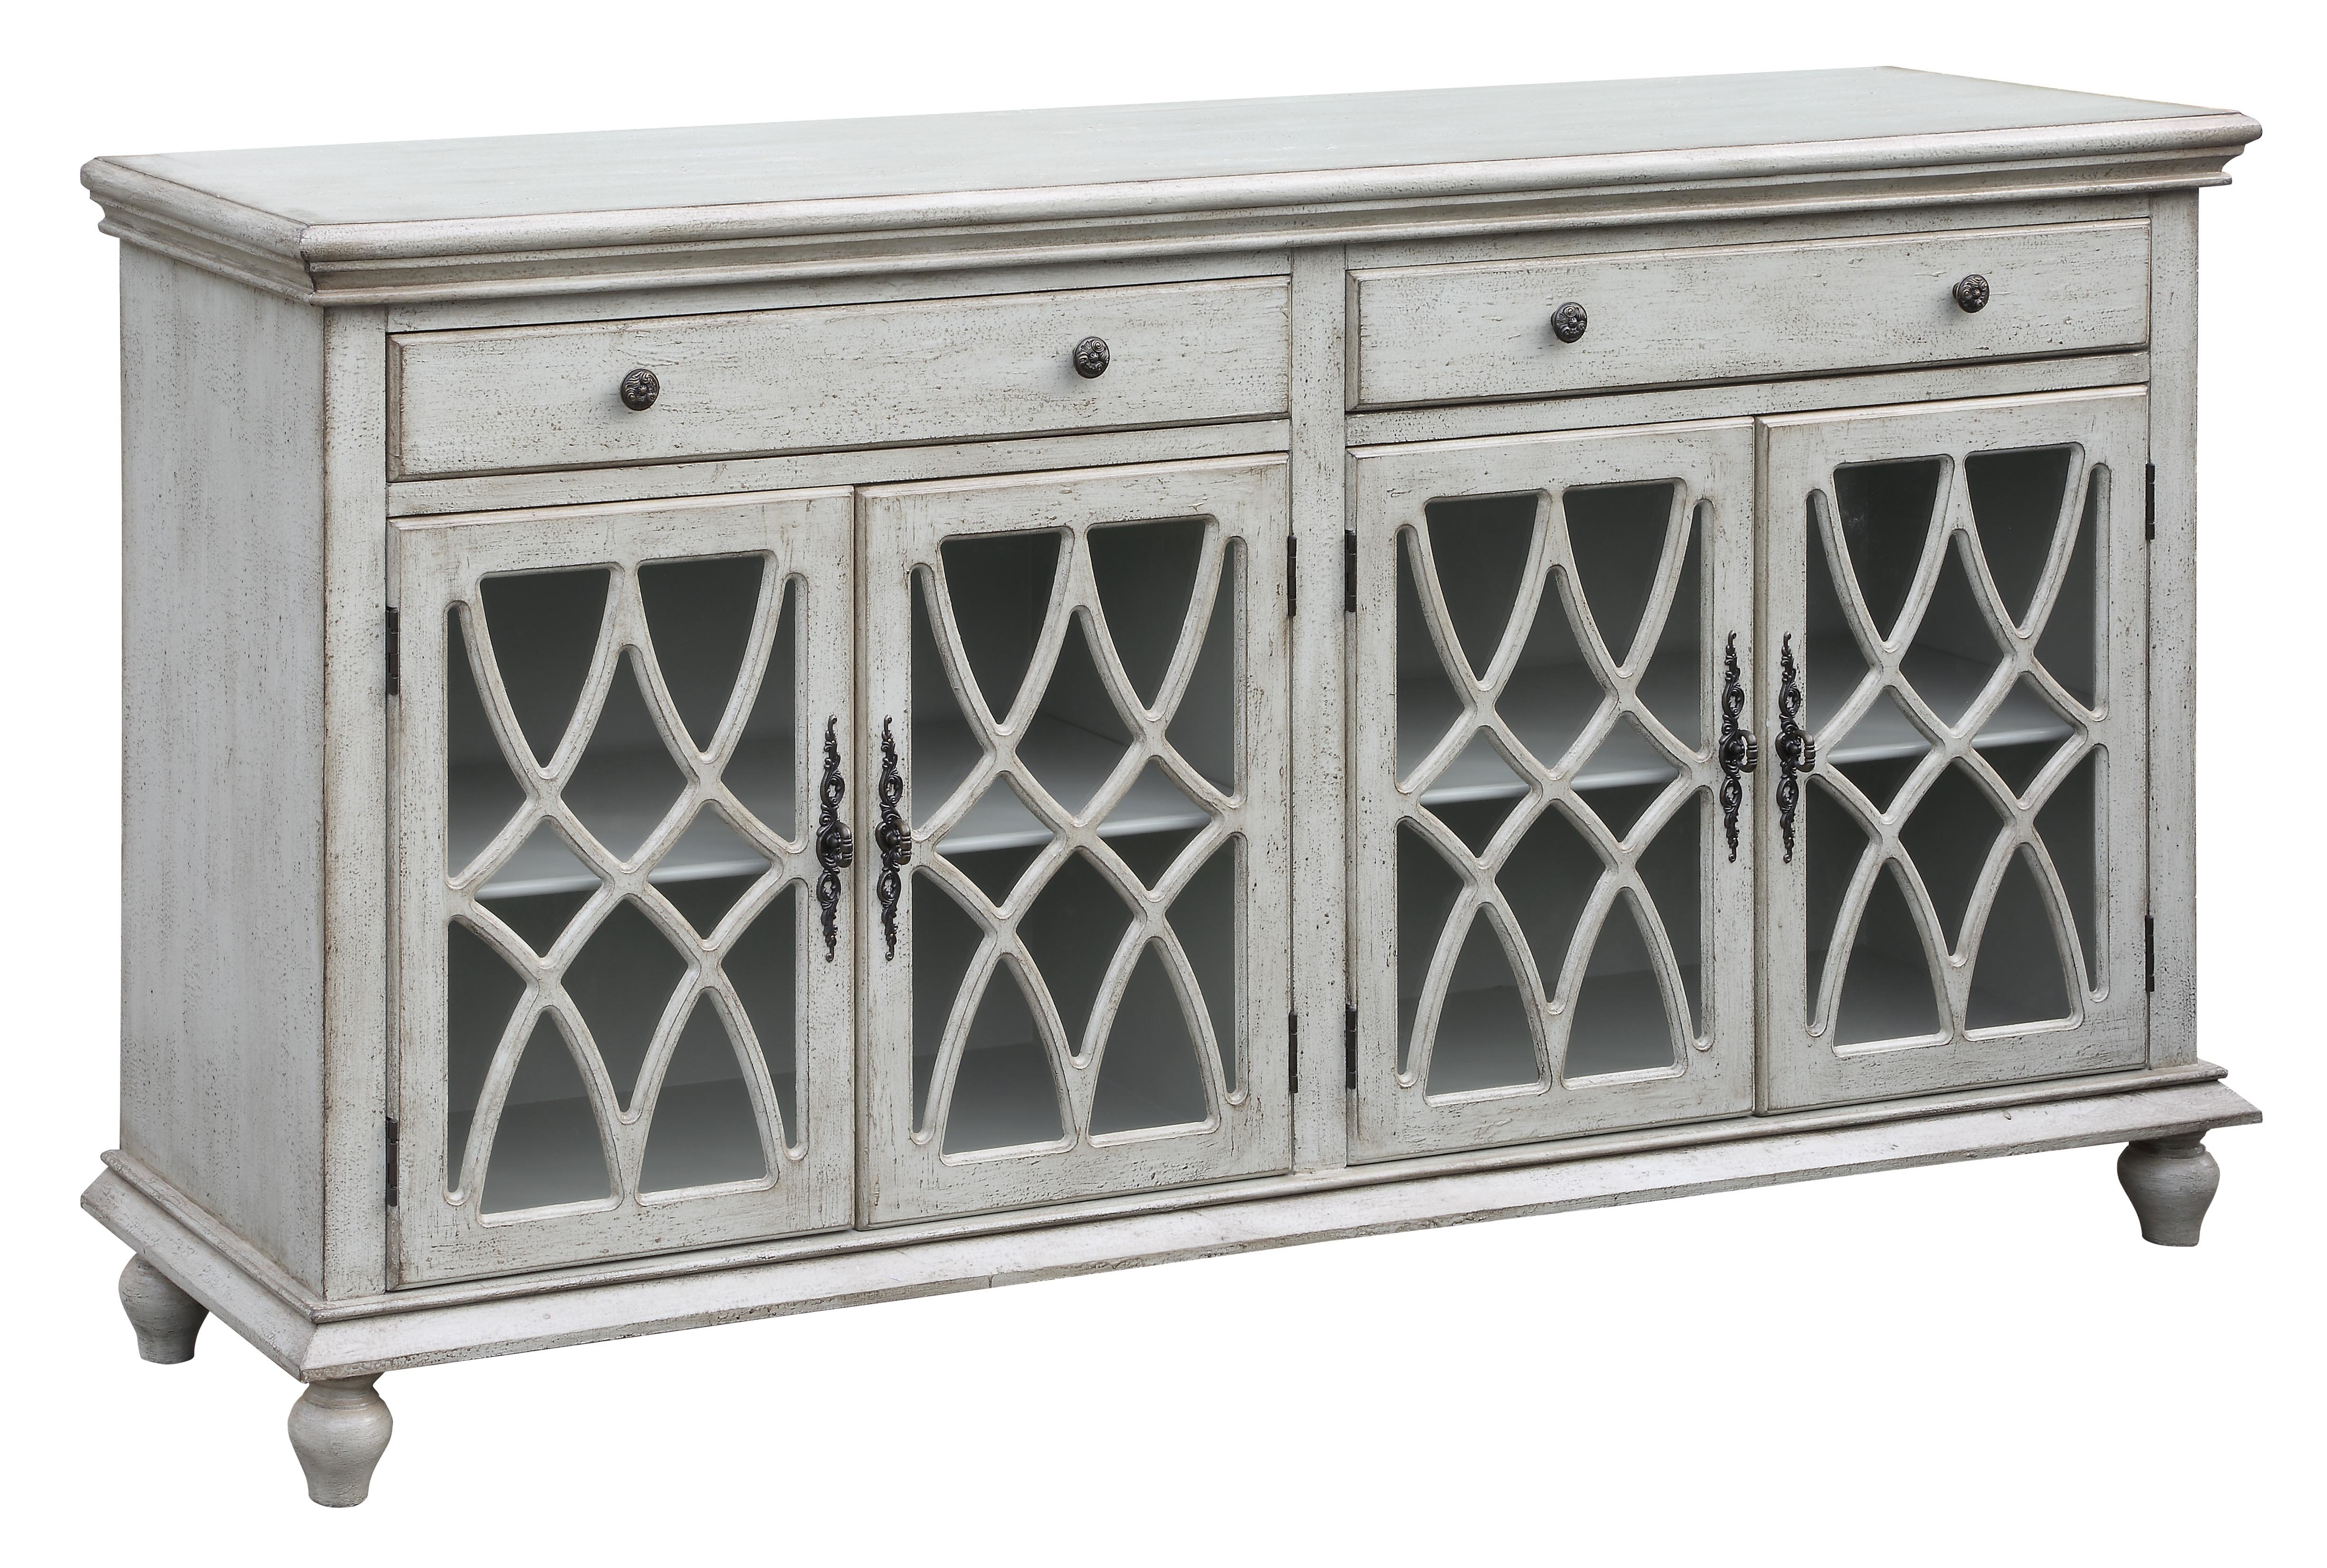 Sideboards & Credenzas | Joss & Main Pertaining To Most Popular Hewlett Sideboards (View 18 of 20)